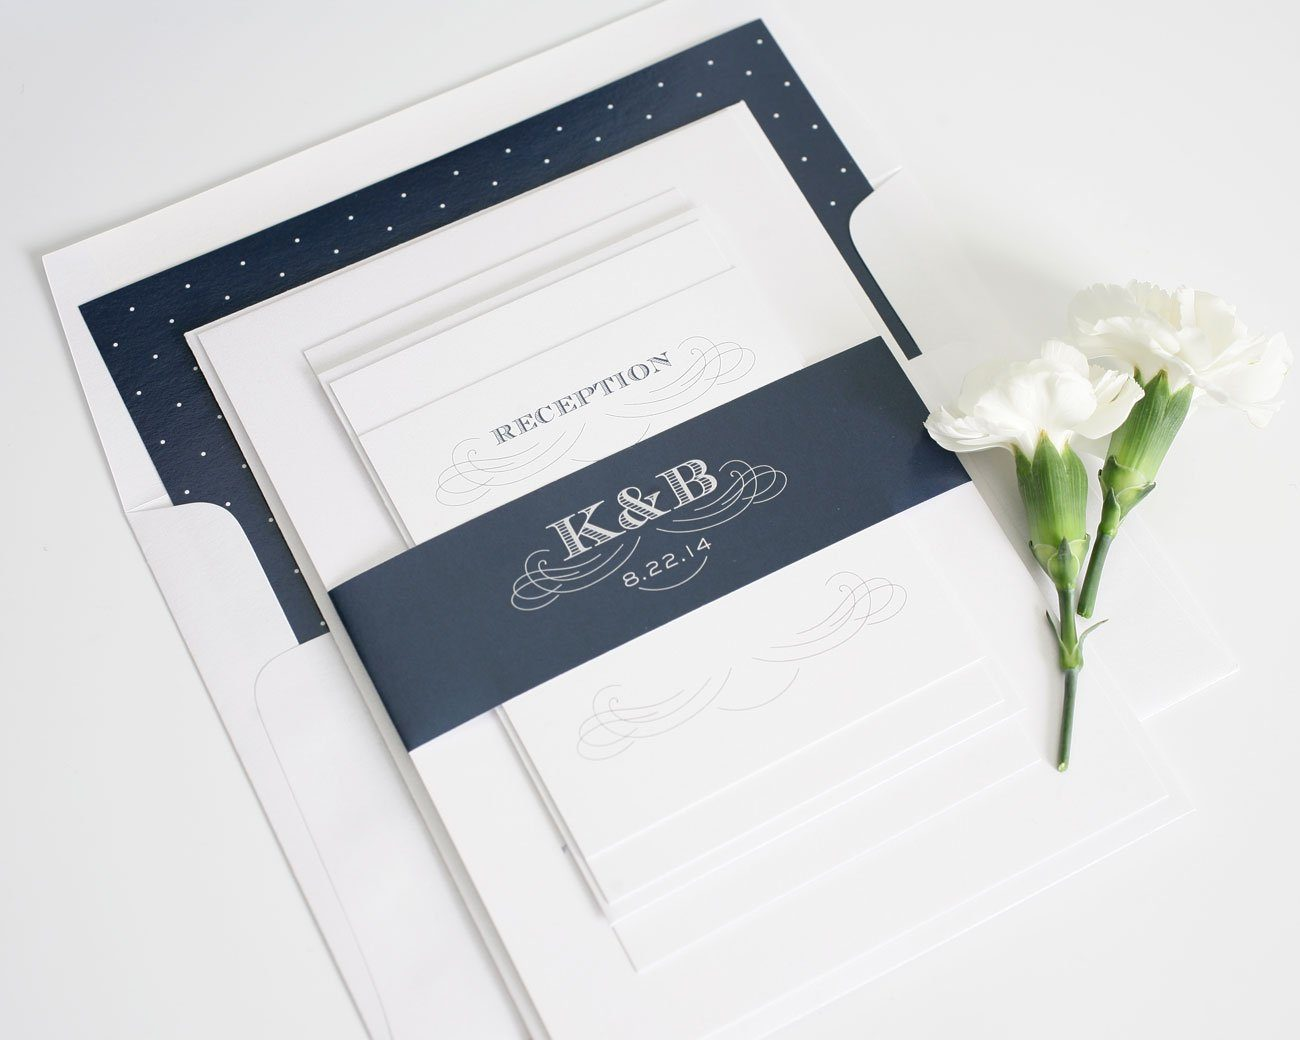 Antique wedding invitations with navy polka dots